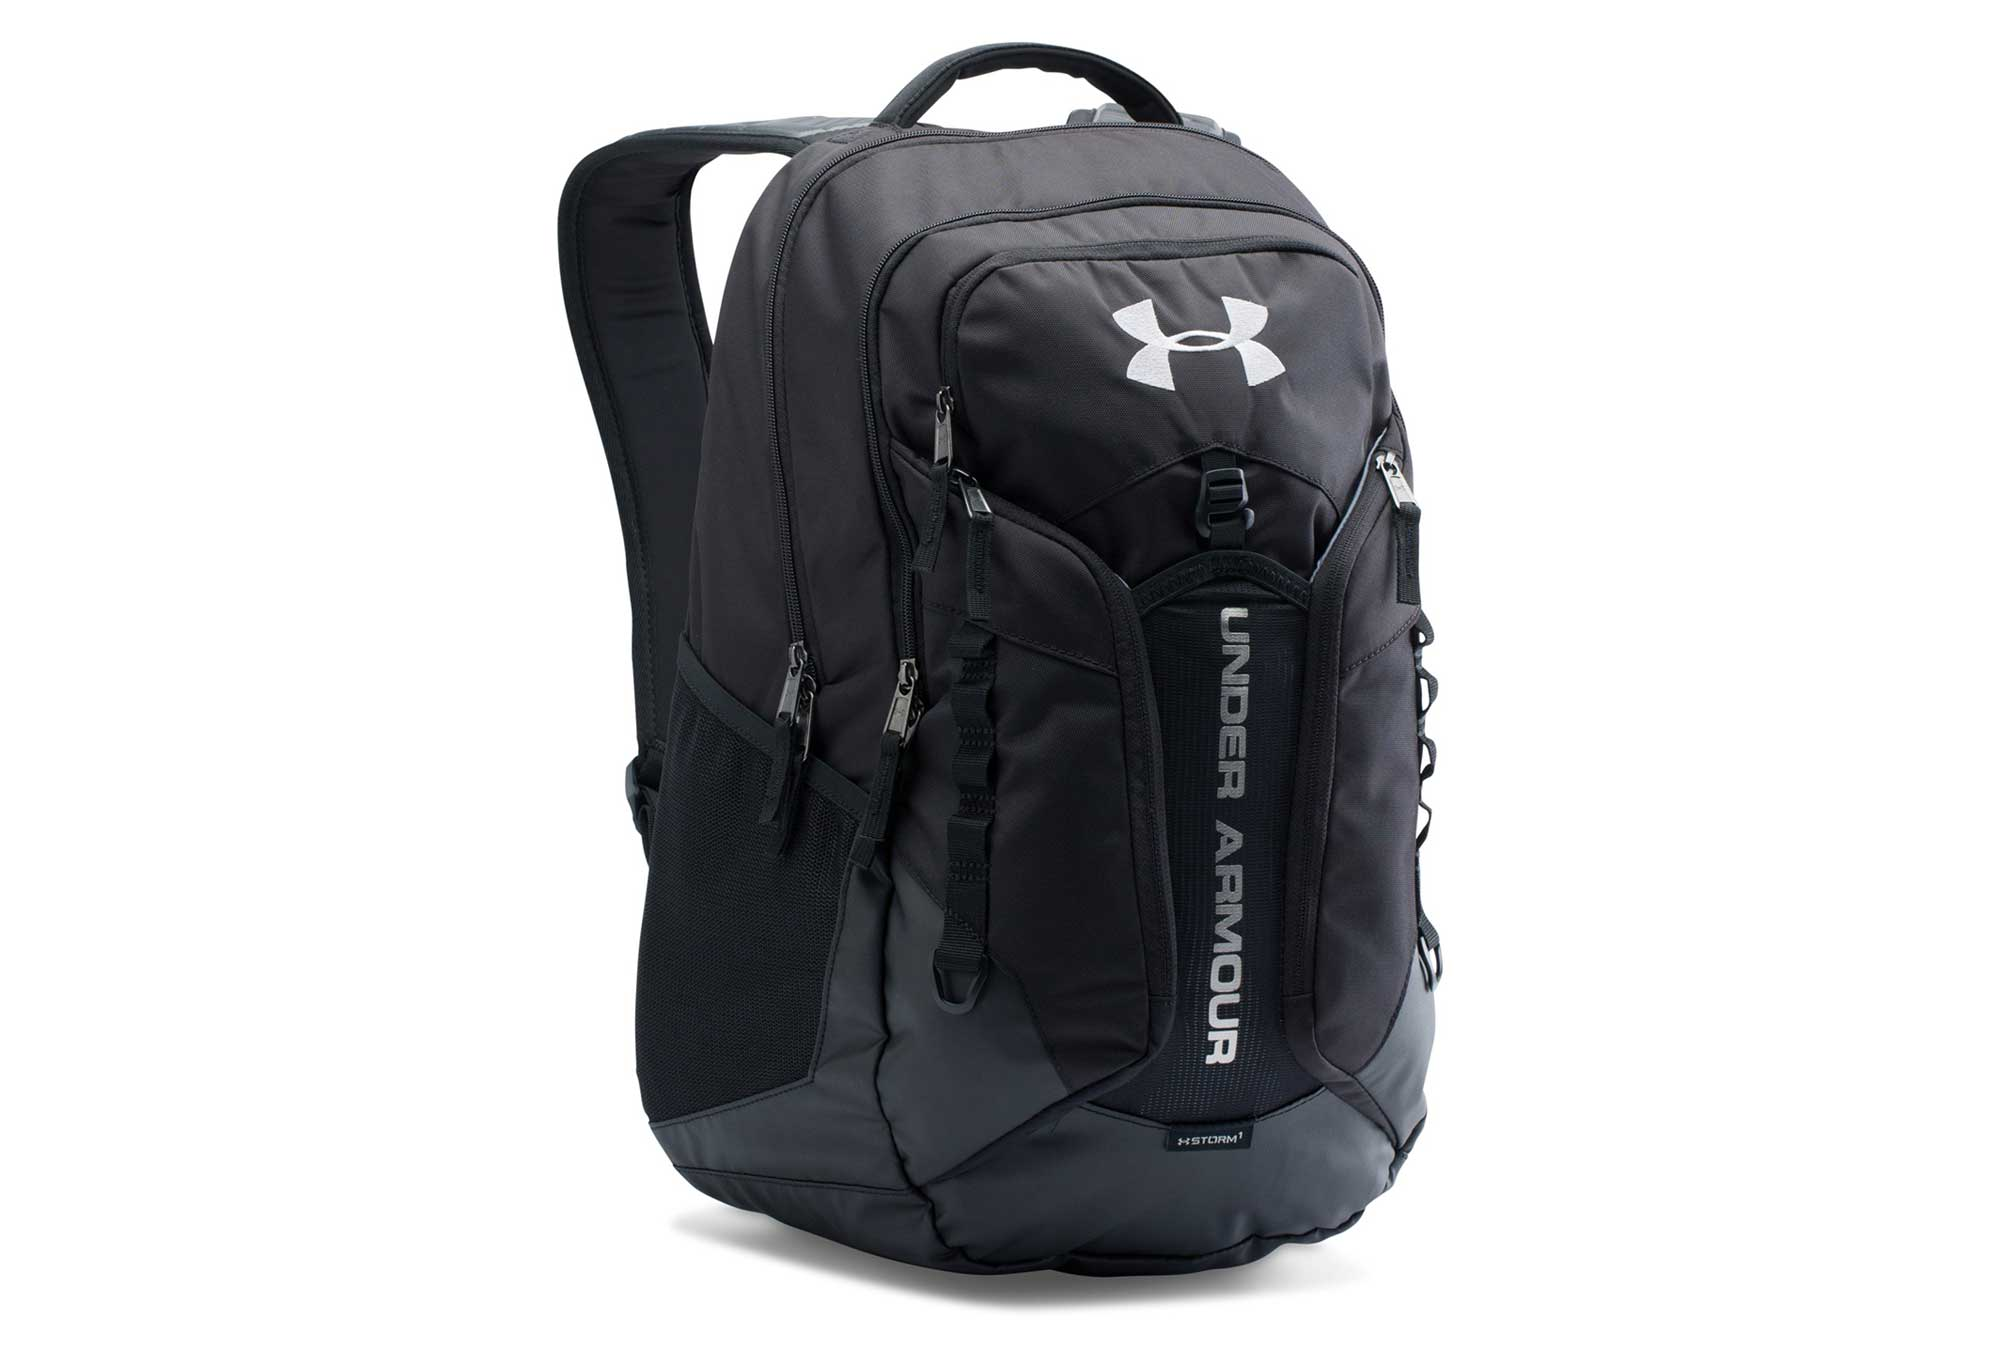 competitive price 139ed 02d1e Under Armour Storm Contender Backpack Black